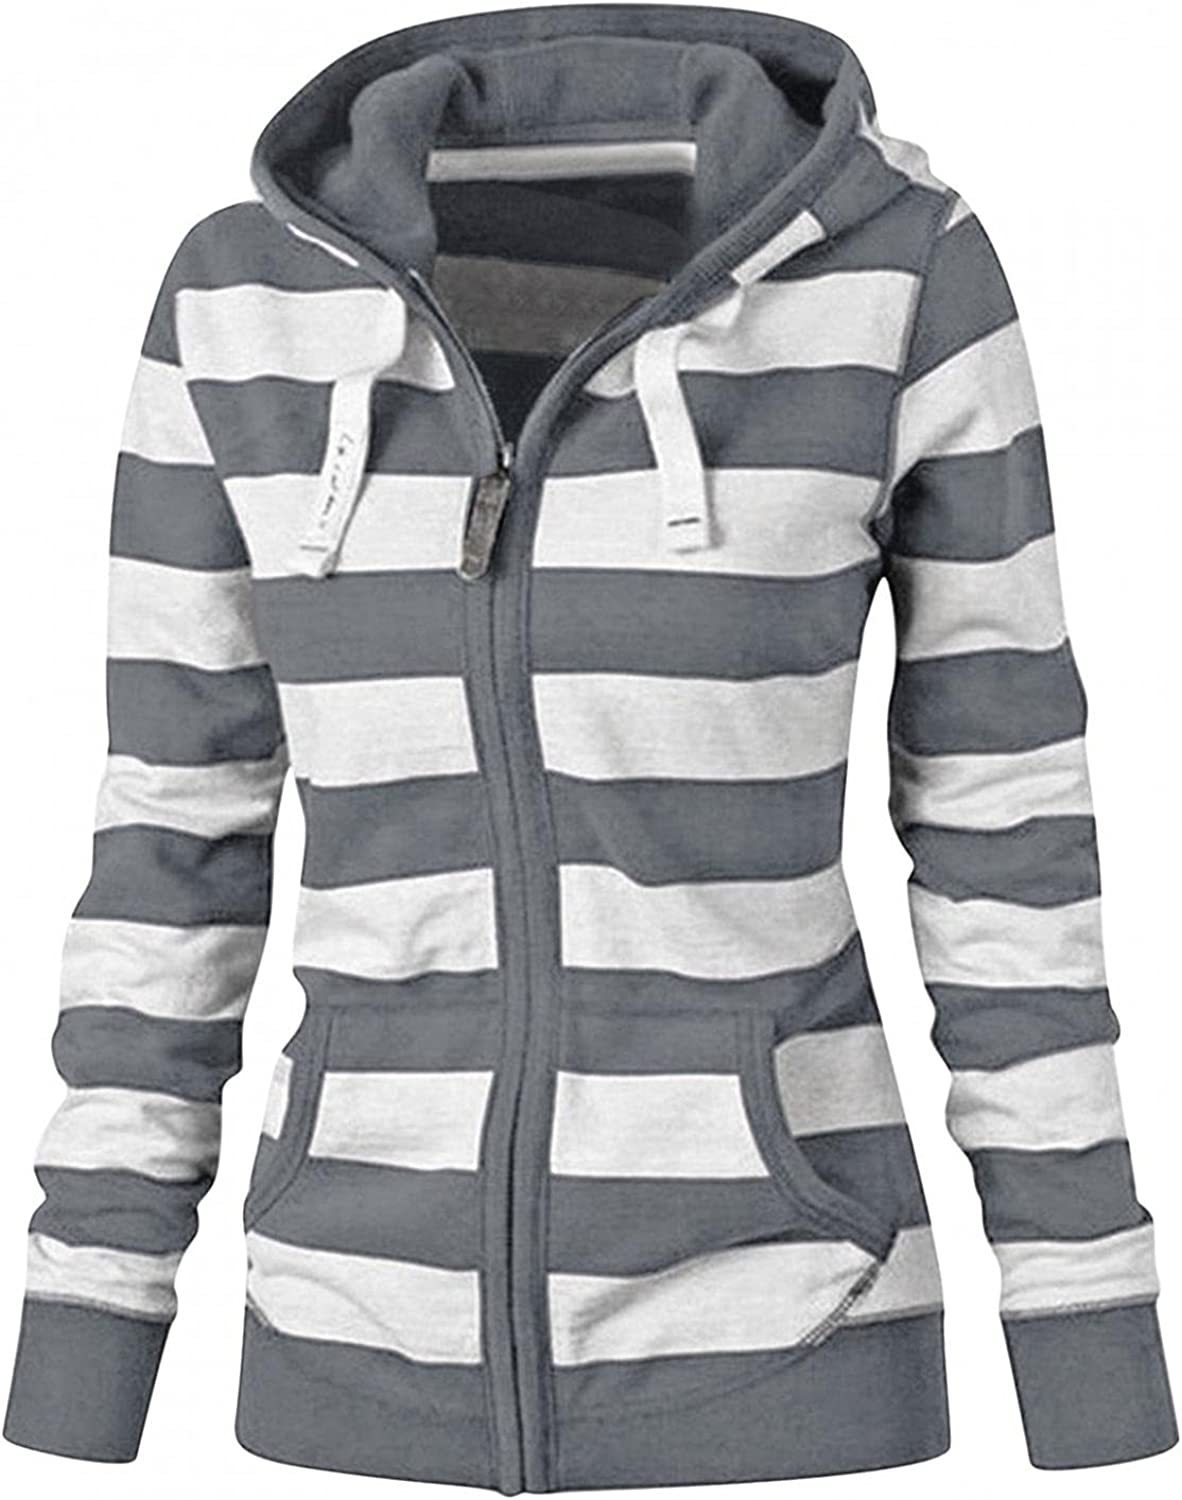 AODONG Hoodies for Women,Long Sleeve Hooded Sweatshirt Zip Up Hoodie Workout Stripes Stitching Blouse Pullover